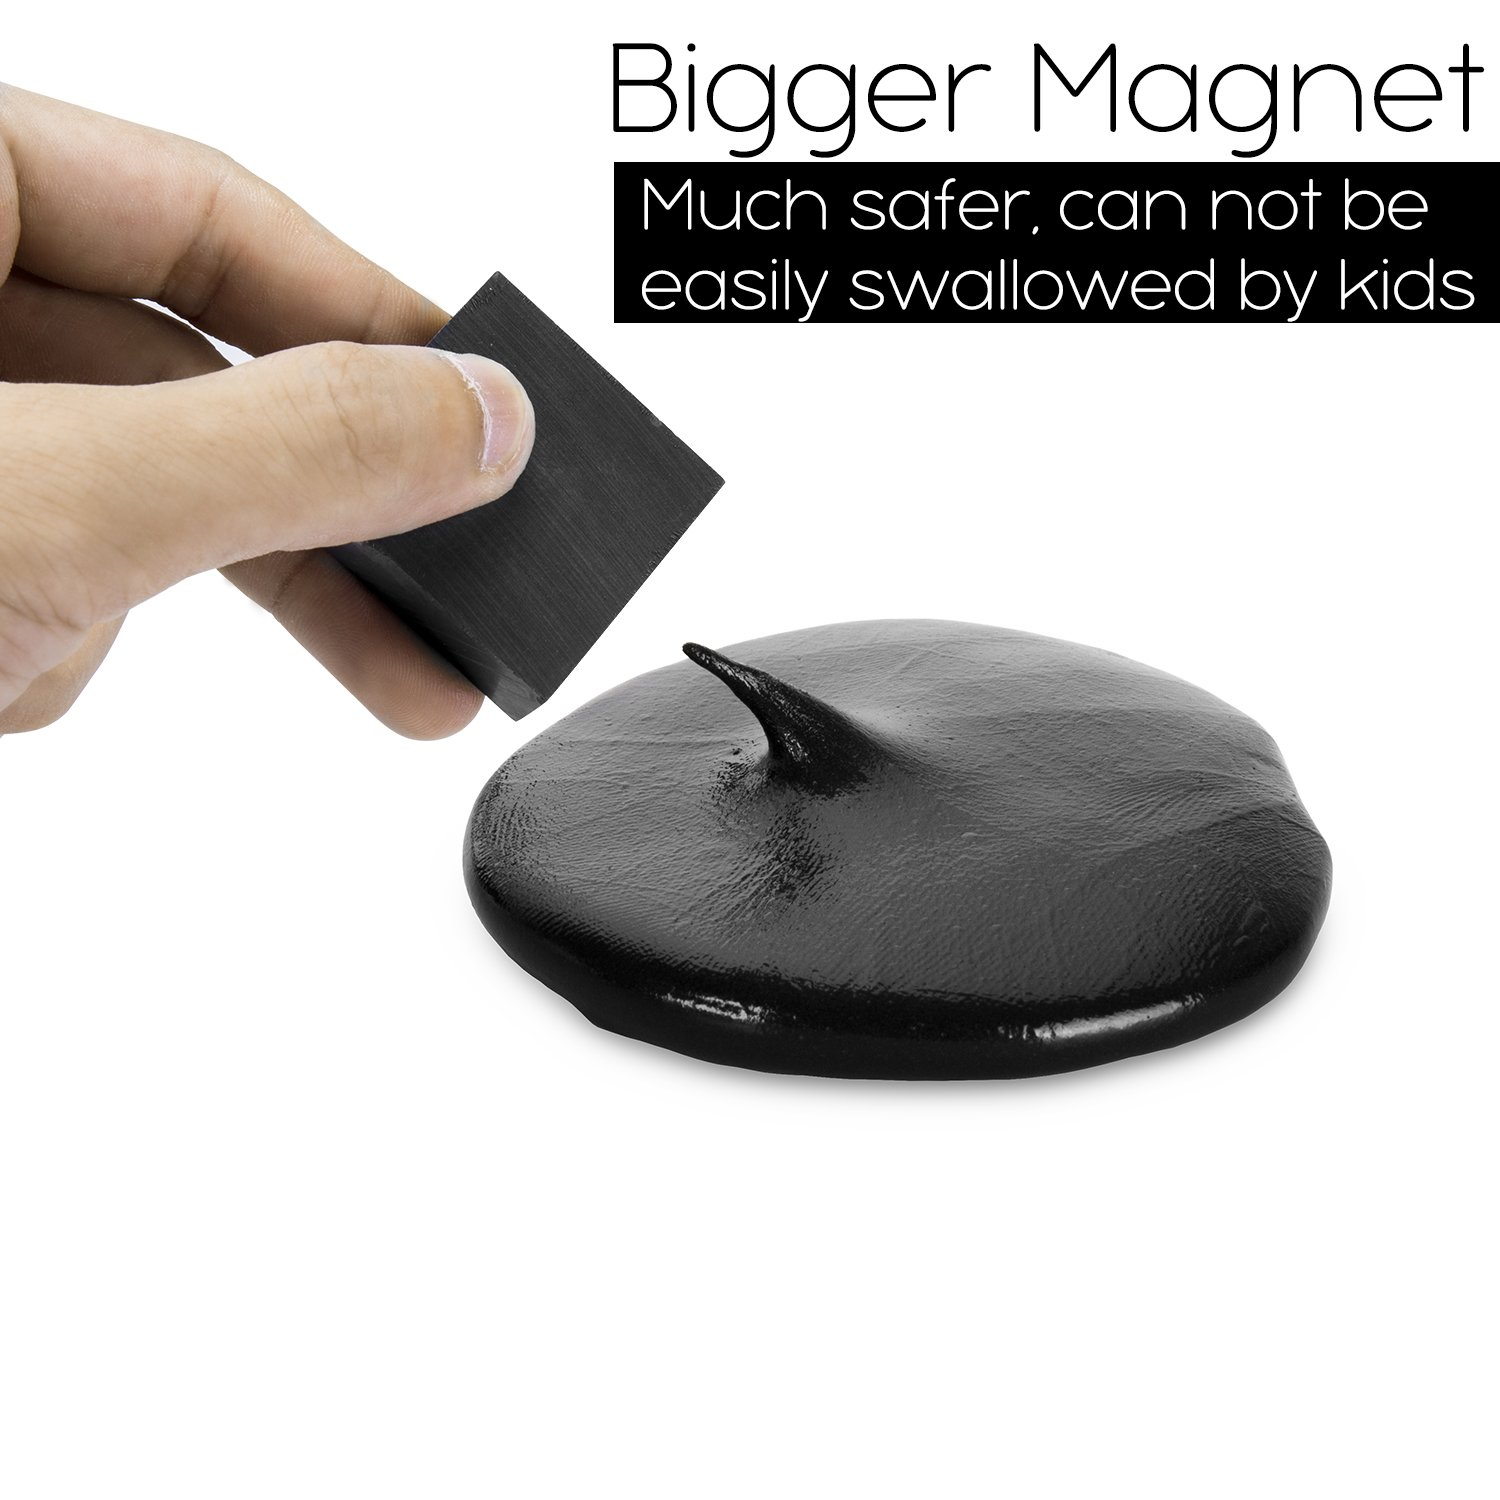 ILC Magnetic Putty Playdough Creative Magnet Toy Slime Stress Reliever for Kids and Adults for Fun (4 Pack) by ILC (Image #2)